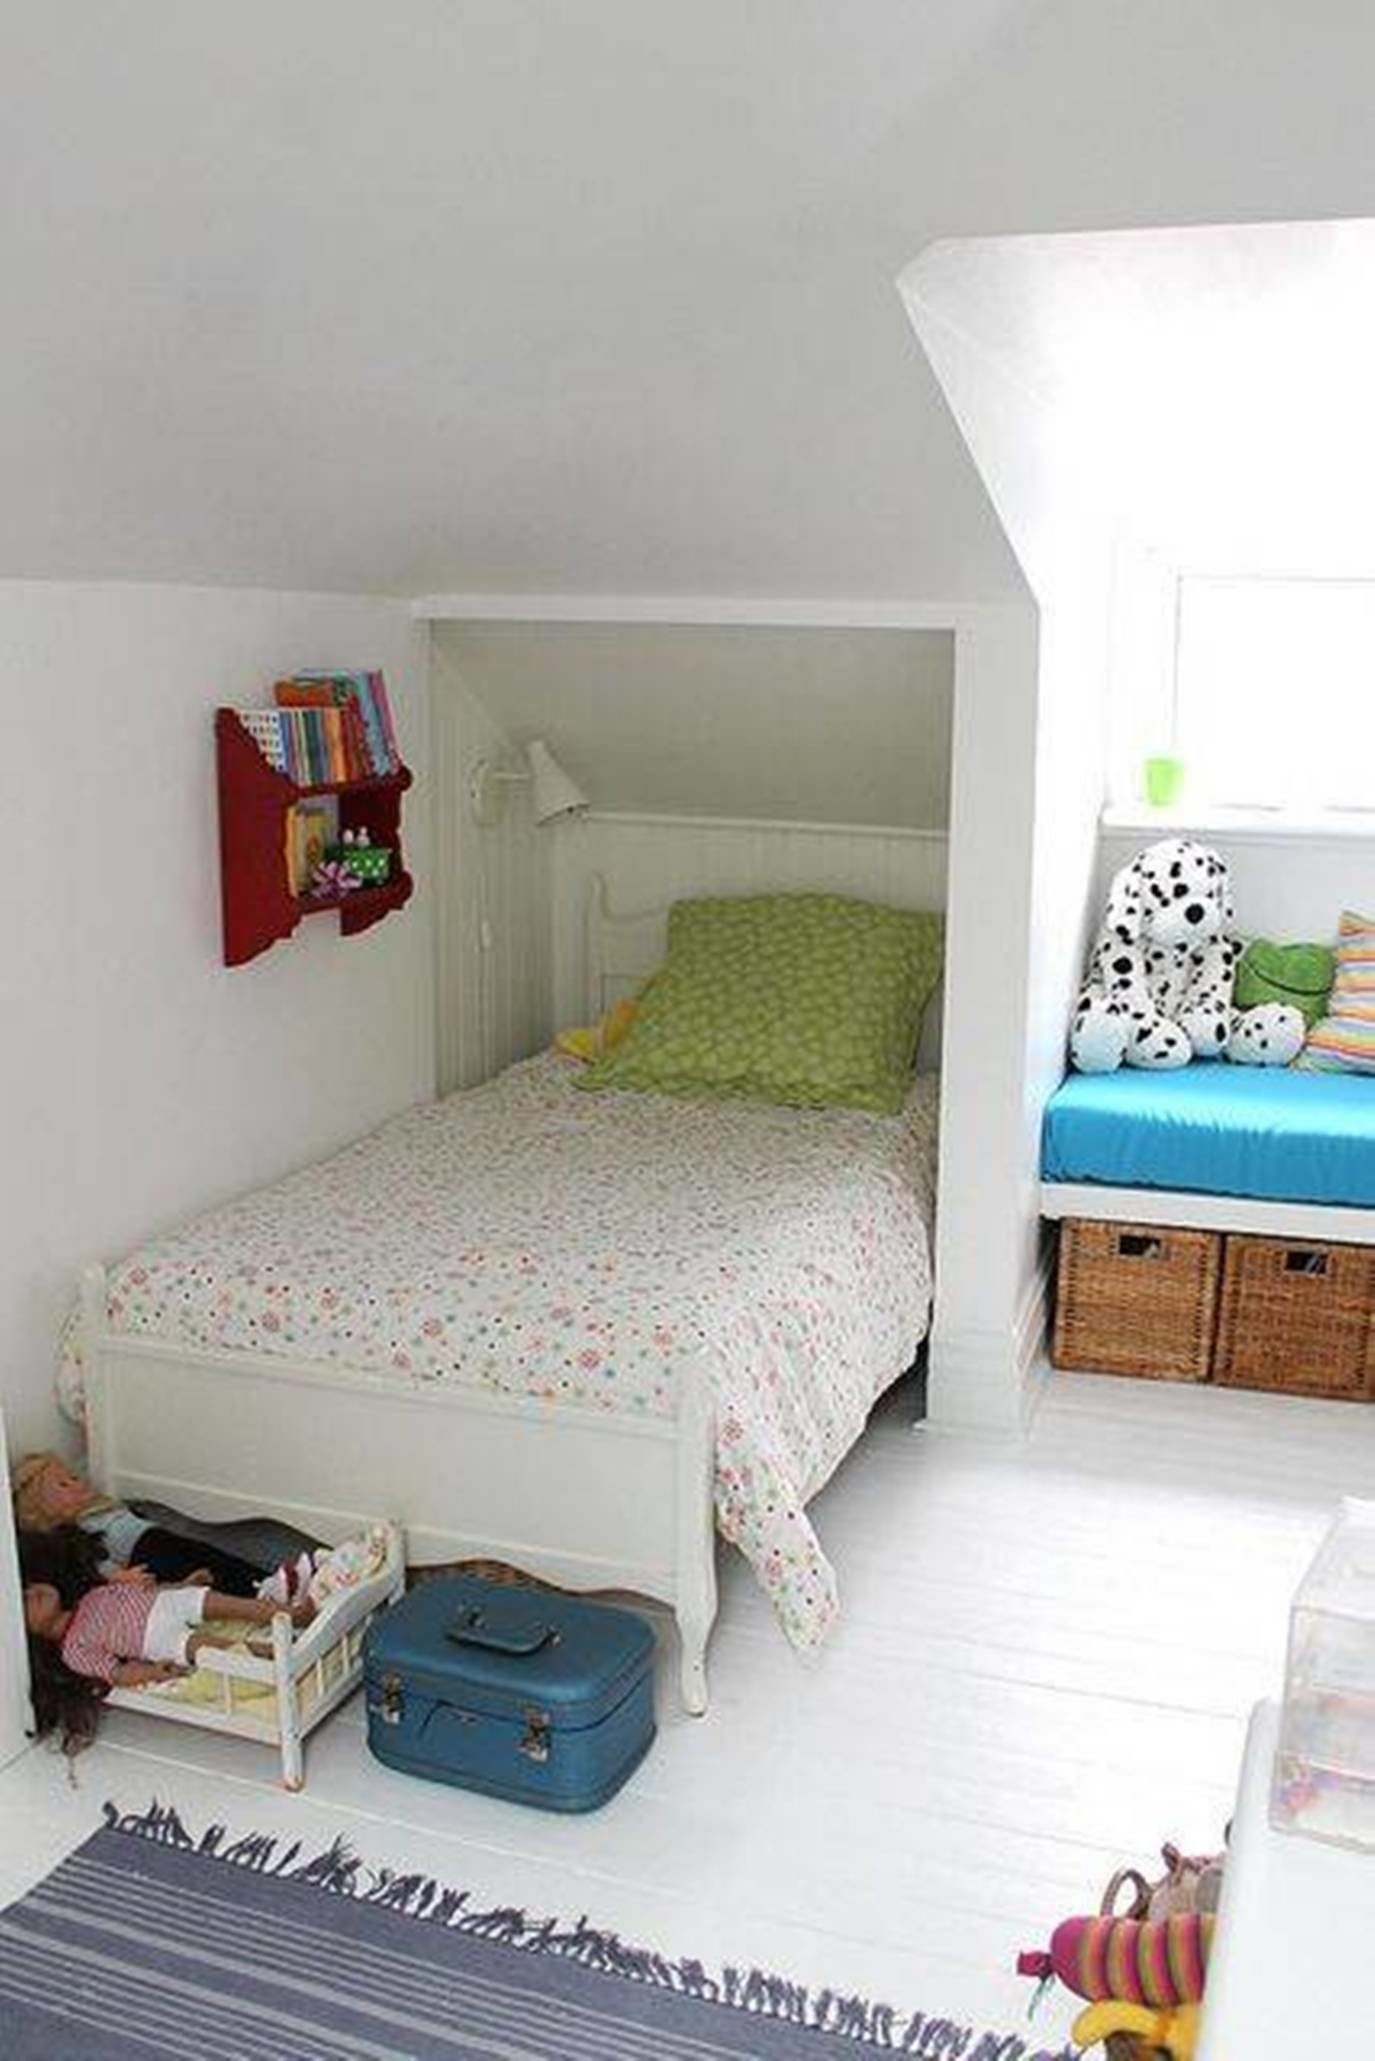 Best Adorable Designs For An Attic Space With Pictures